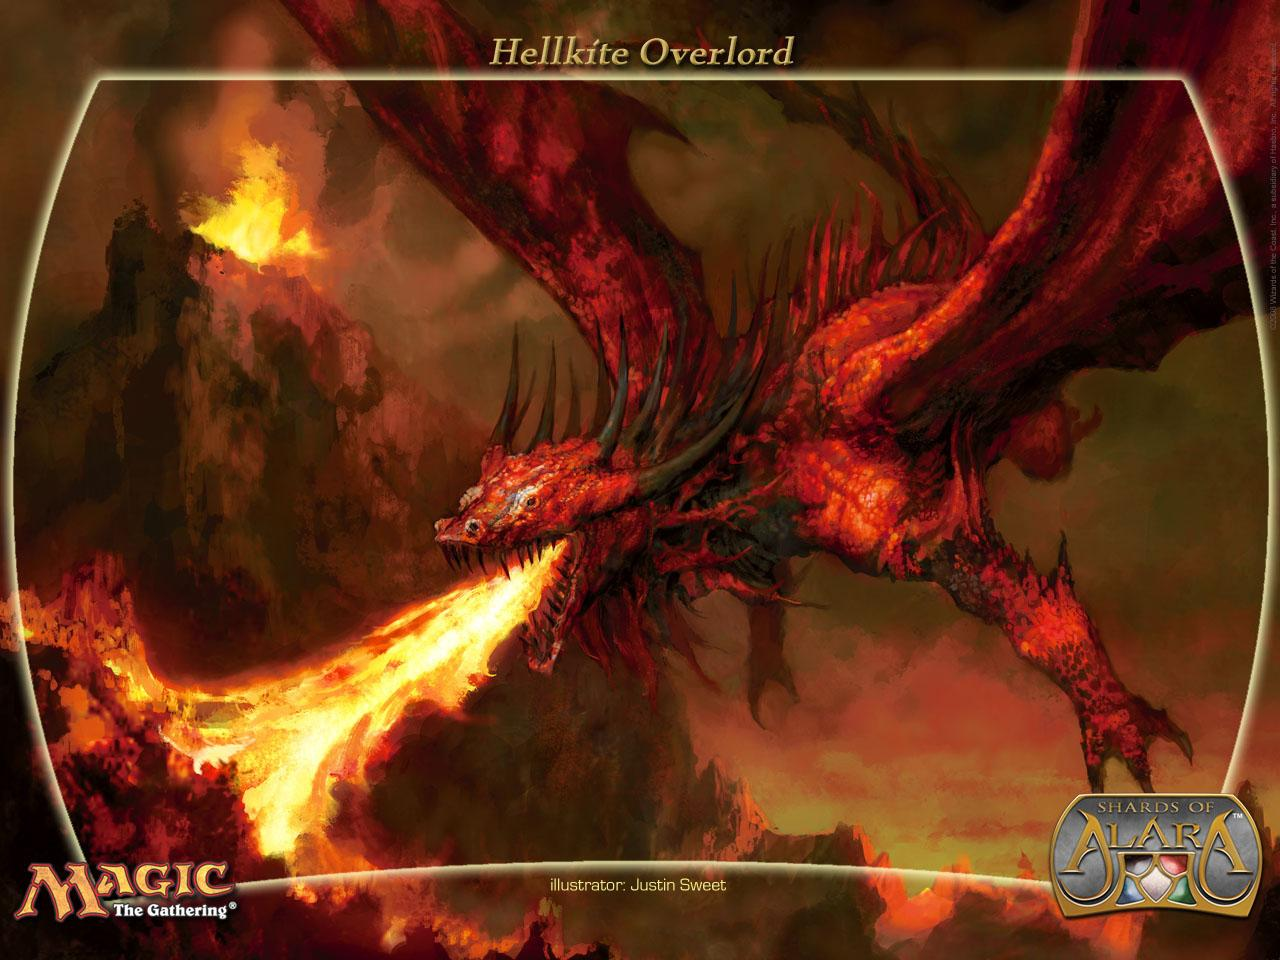 Обои Magic Gathering - Hellkite overlord 1280x960